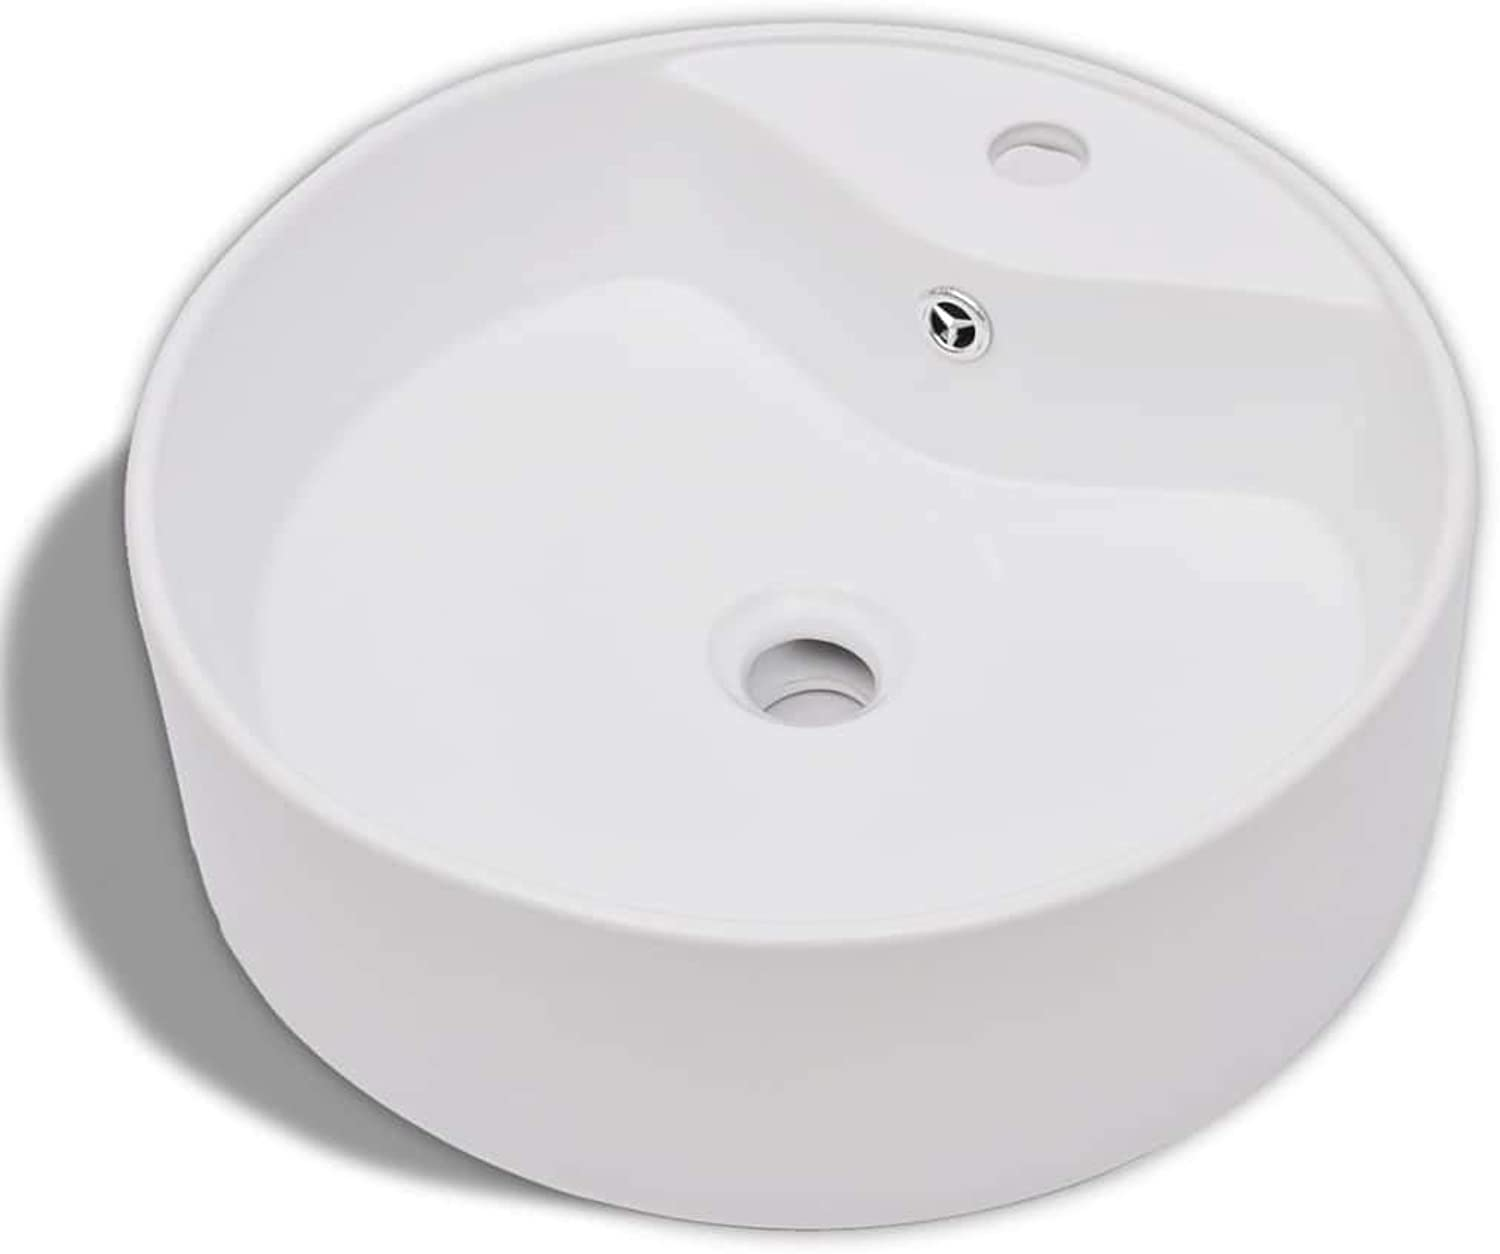 Ceramic Washbasin Tap Hole Overflow Hole White Round Washbasin